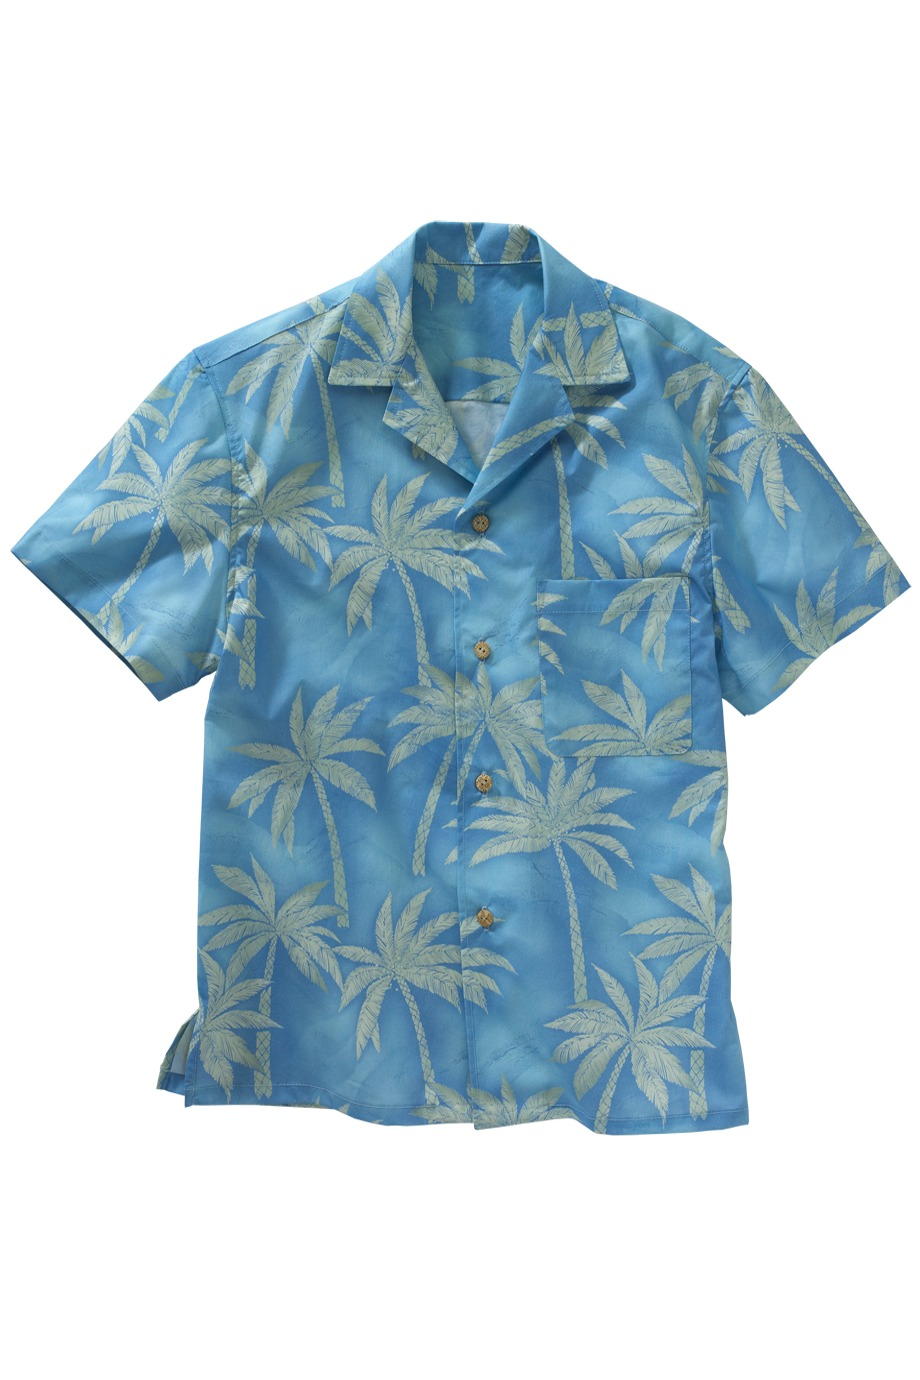 Plain White Mens Camp Shirts Wholesale From 384